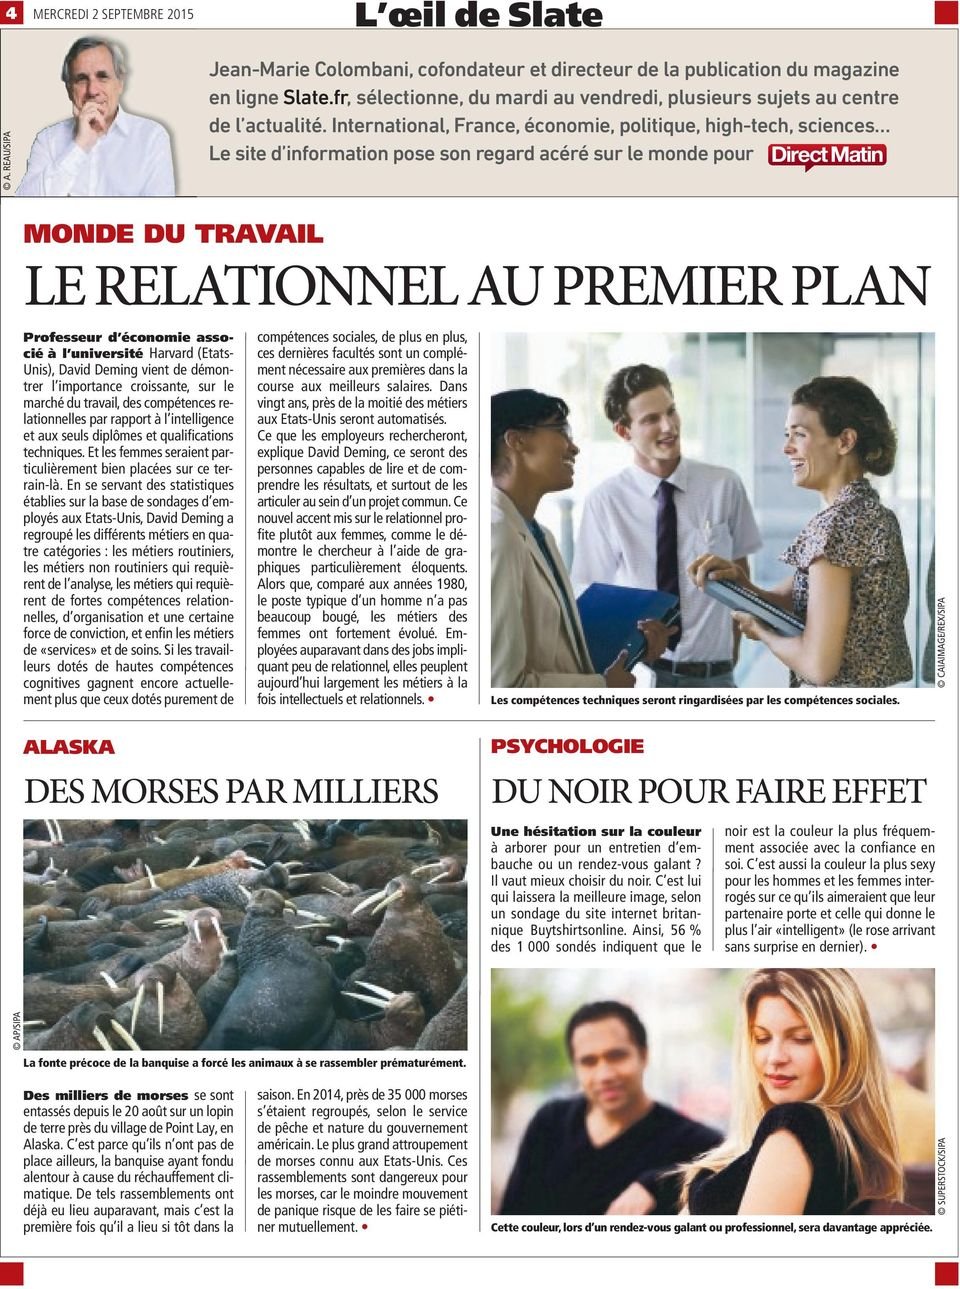 International, France, économie, politique, high-tech, sciences Le site d information pose son regard acéré sur le monde pour DirectMatin MONDE DU TRAVAIL LE RELATIONNEL AU PREMIER PLAN Professeur d